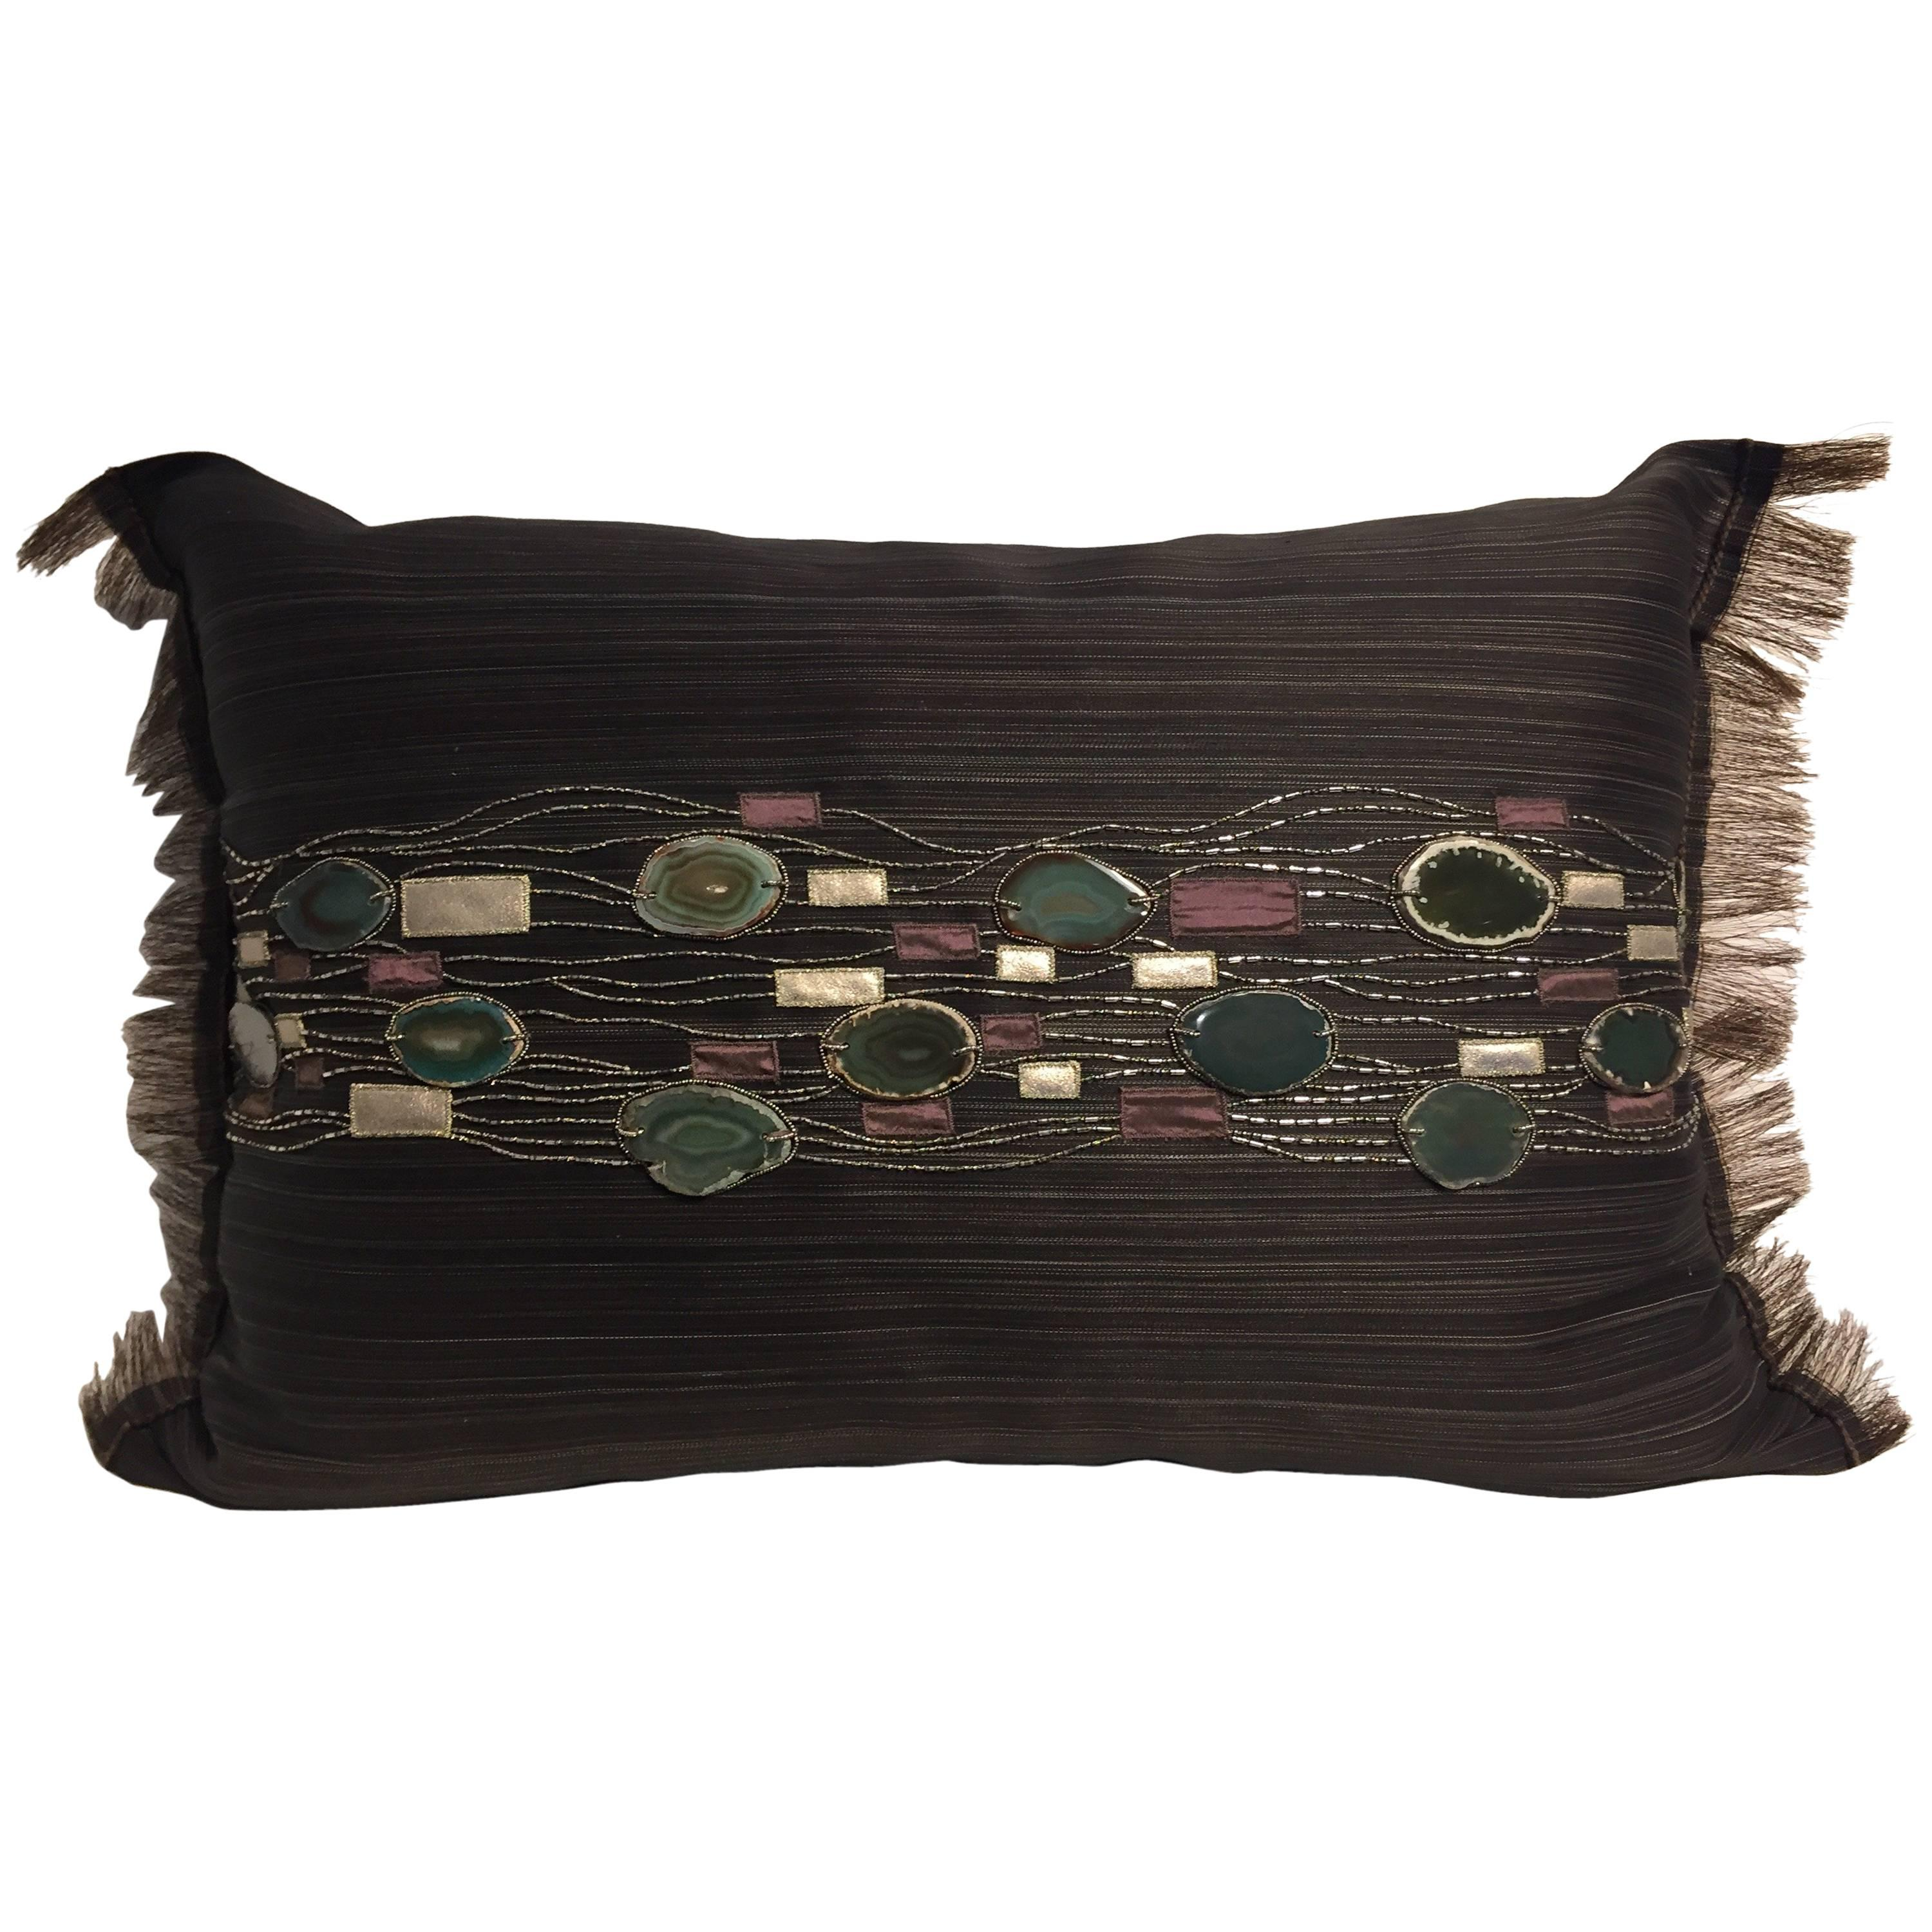 Decorative Cushion Hand Embroidery With Agate Stones on Horsehair